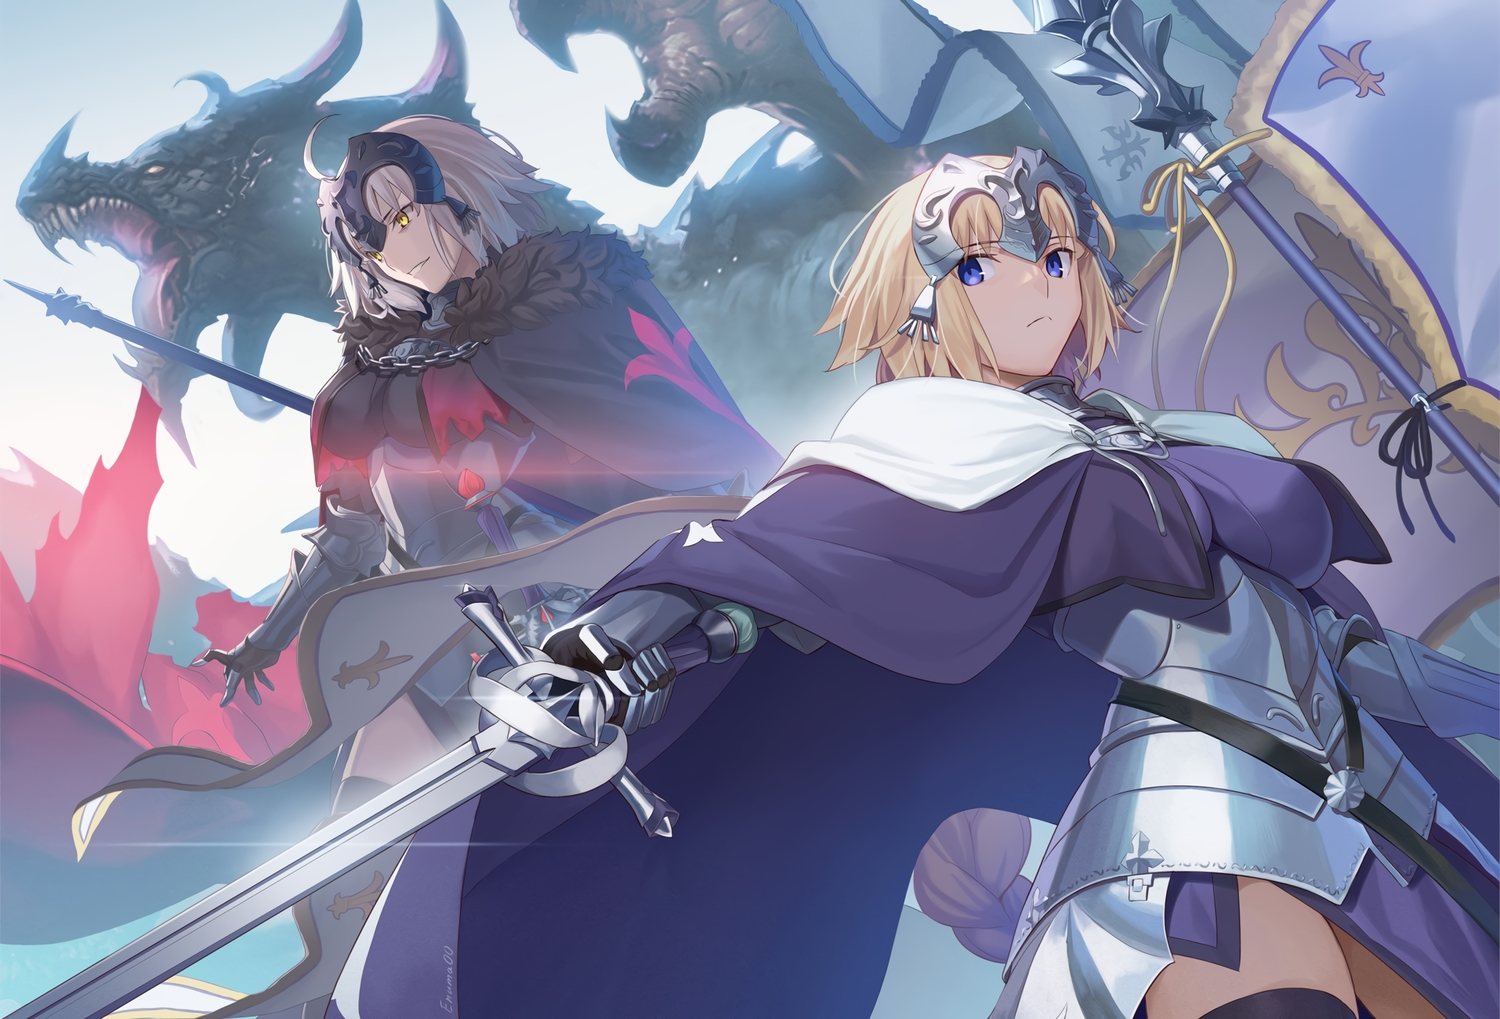 2girls aora armor blonde_hair blue_eyes cape dragon fate/grand_order fate_(series) gloves gray_hair jeanne_d'arc_alter jeanne_d'arc_(fate) long_hair ponytail short_hair signed sword weapon yellow_eyes